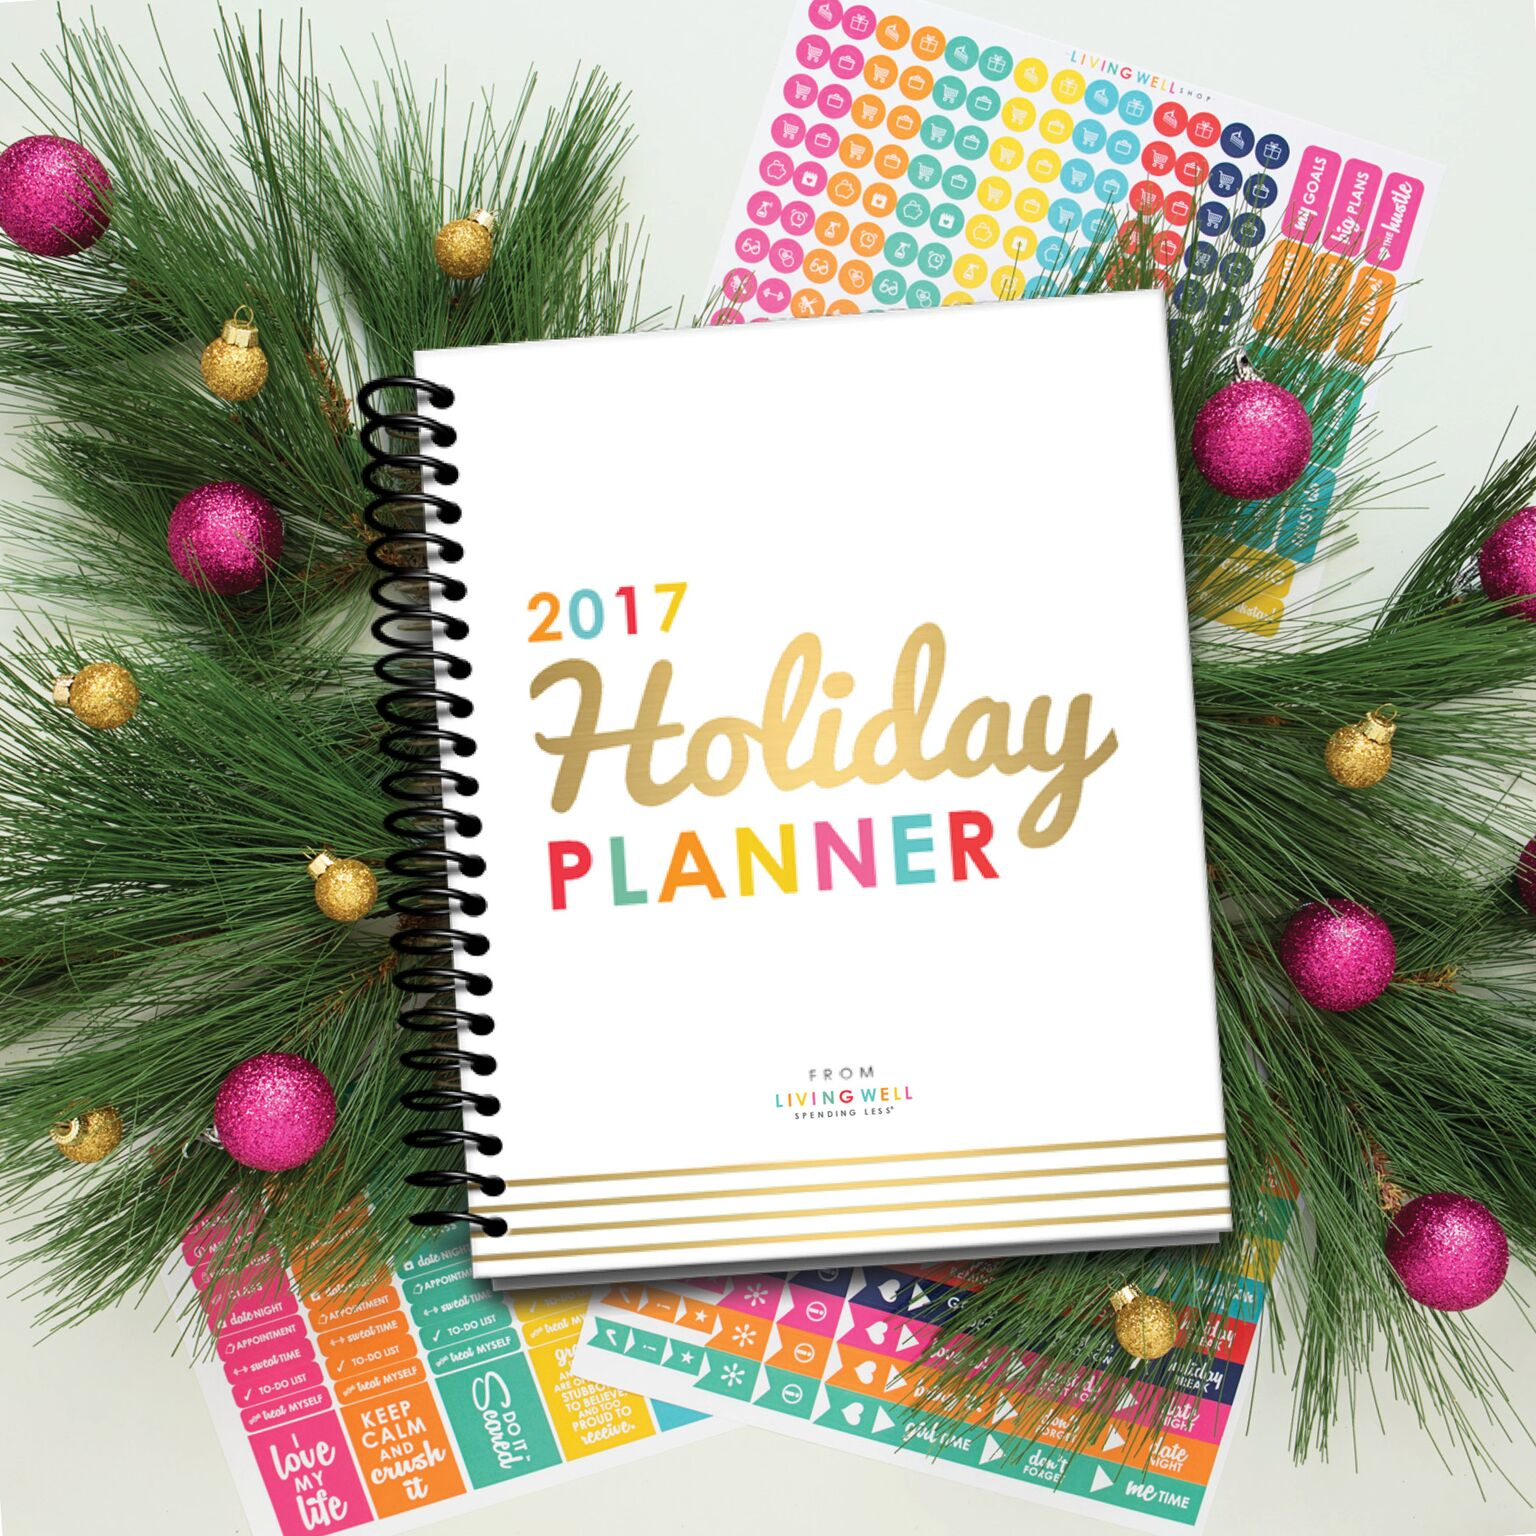 Living Well Spending Less: Get The 2017 LWSL Holiday Planner